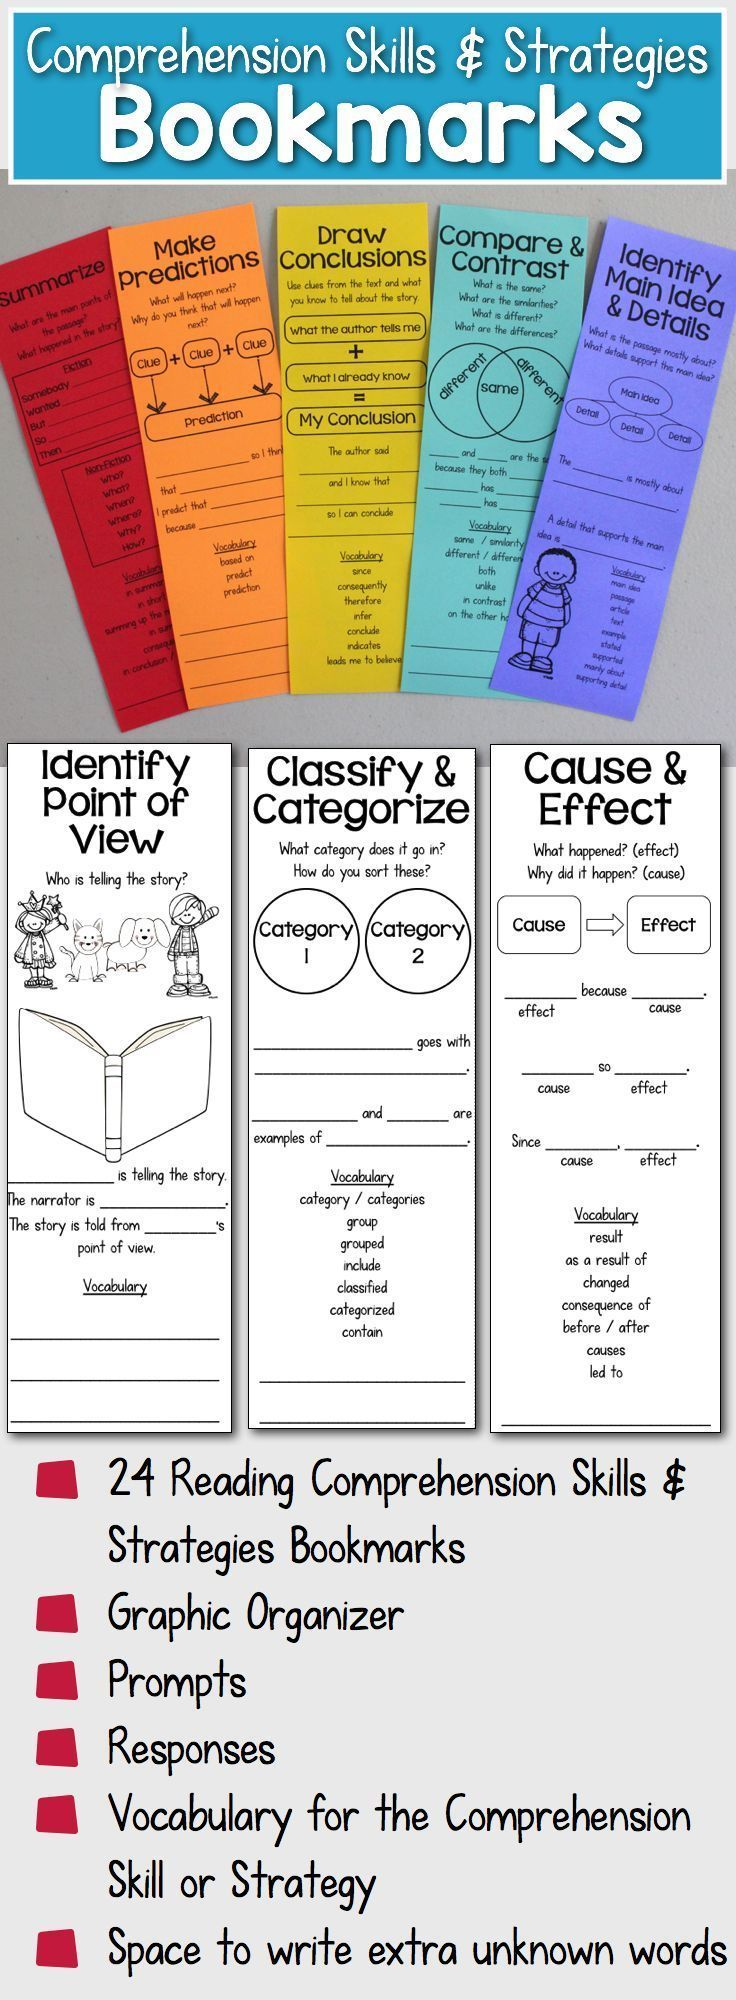 Comprehension Skills & Strategies Bookmarks that help students monitor their comprehension and use academic language to ask and answer questions about the text.  The bookmarks include graphics organizers and vocabulary in addition to sentence frames for both prompts and responses  Perfect for English learners.